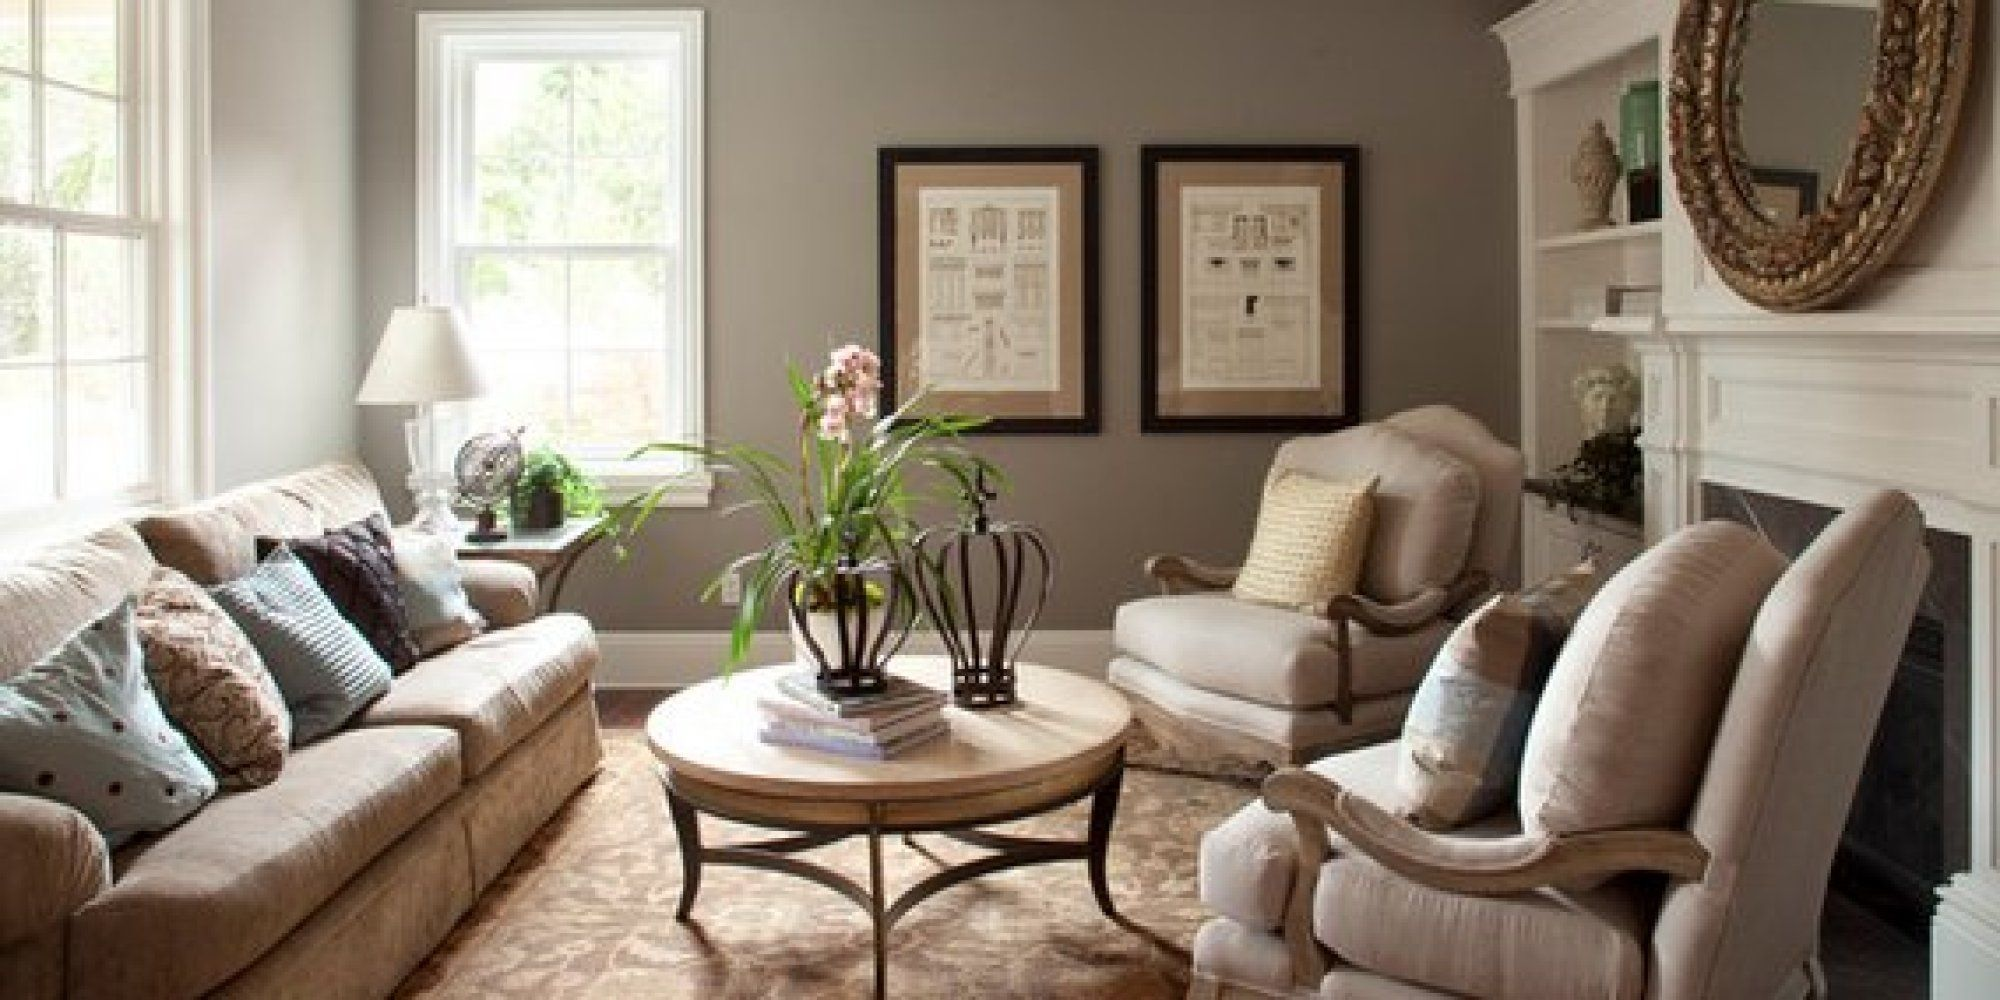 color scheme taupe and ideas for frame mat make mats on paint colors for living room id=87296